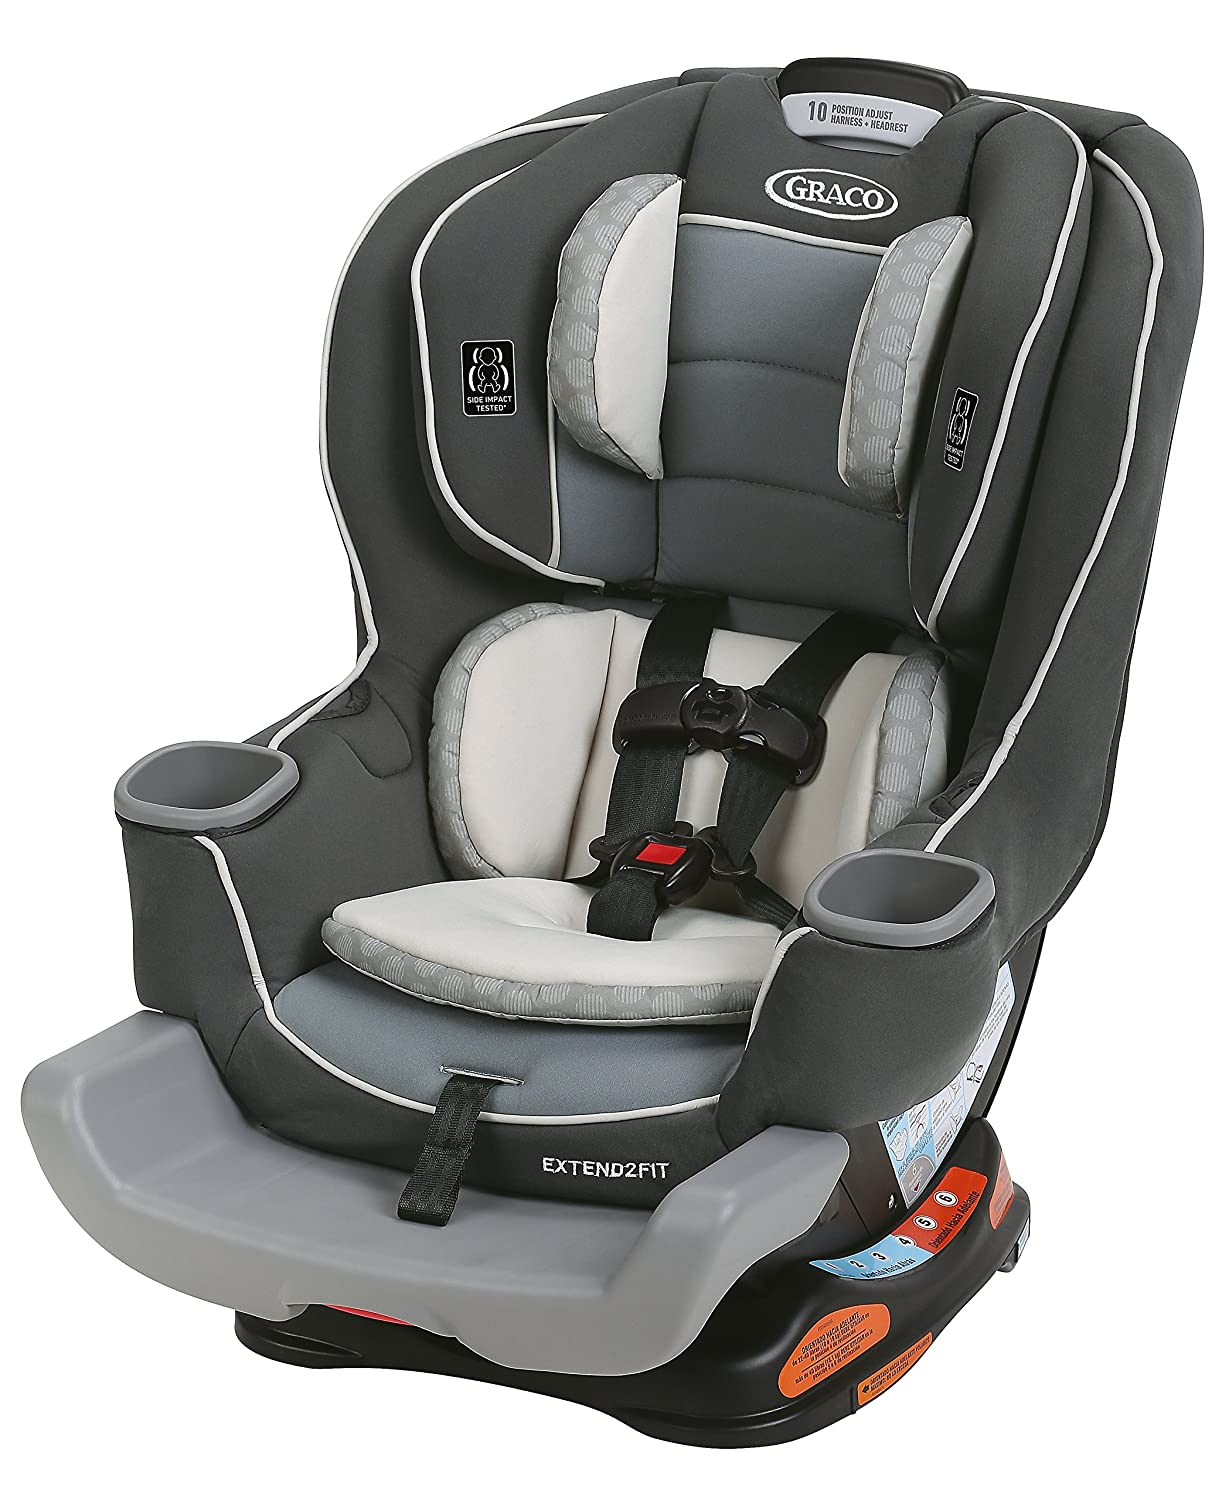 Graco slimfit all in one convertible car seat graco nautilus 65 lx 3 in 1 harness booster milestone all in one convertible car seat